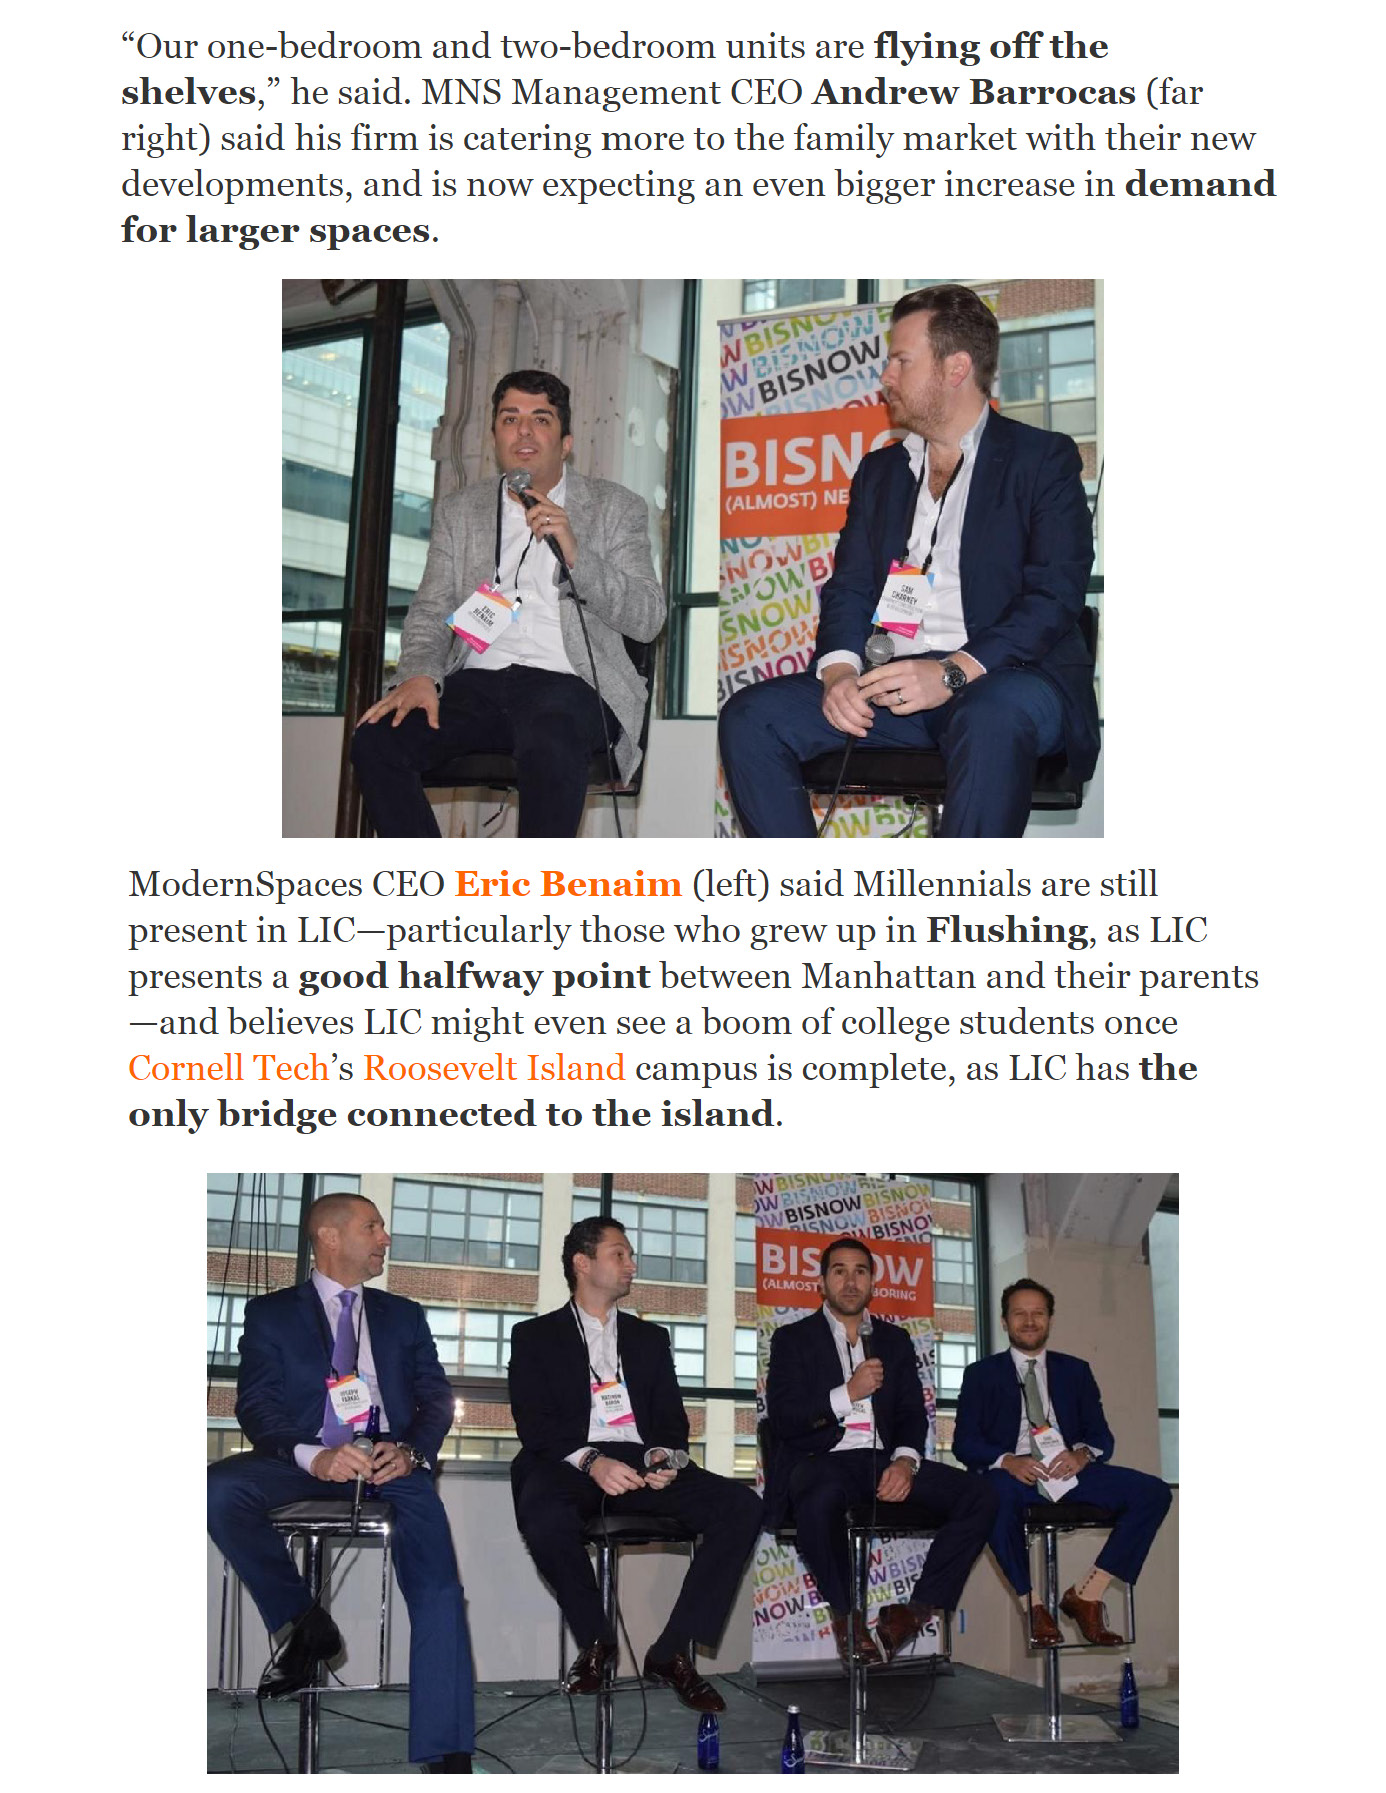 bisnow-new-neighborhood-names-and-the-hunt-for-authenticity-in-queens-1_page_4_page_2